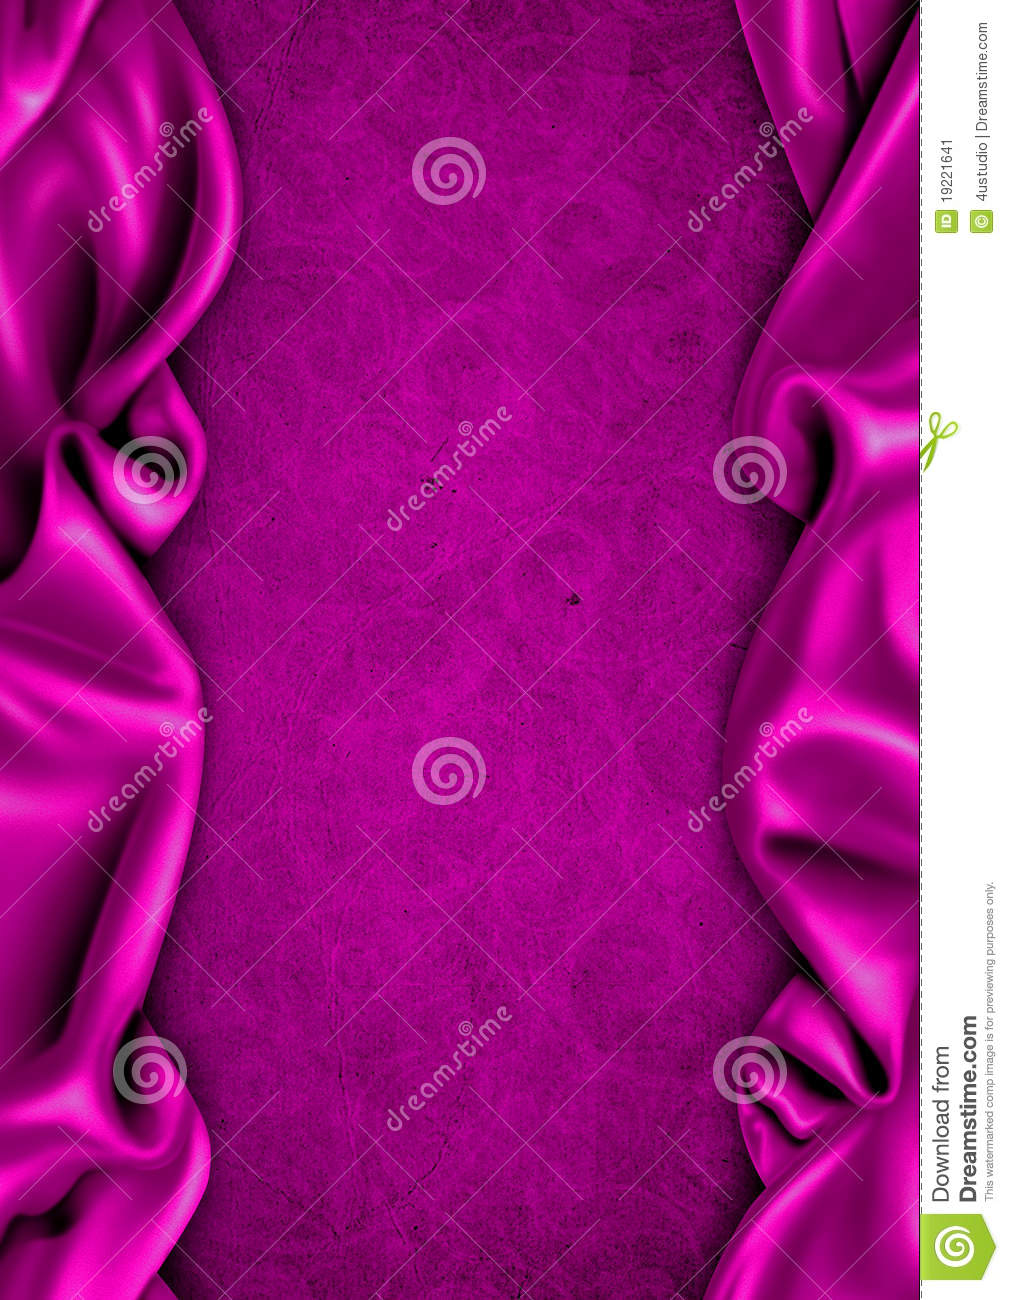 purple satin silky background royaltyfree stock image